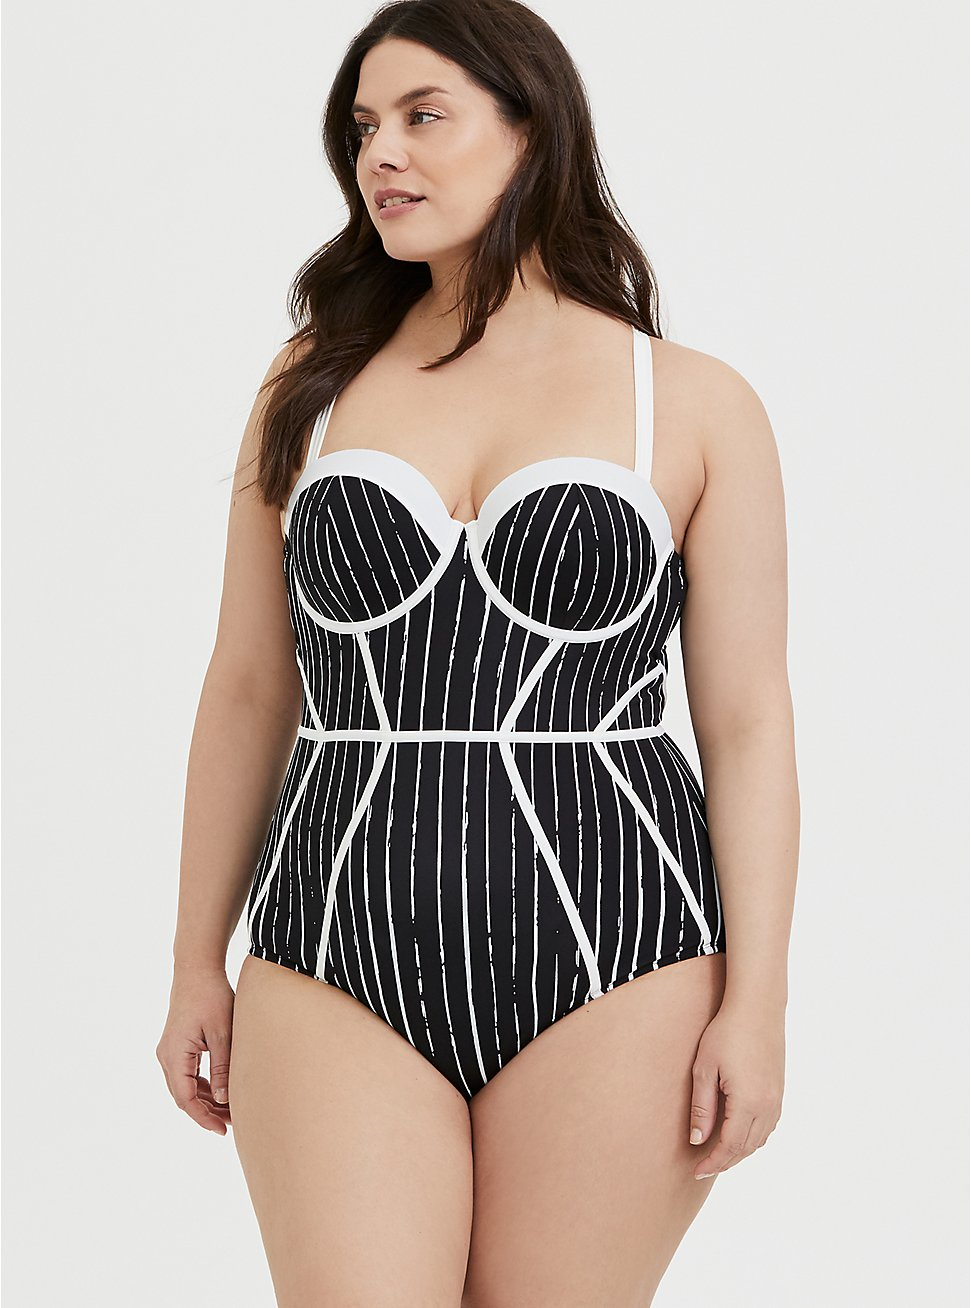 Disney The Nightmare Before Christmas Jack Skellington Underwire One-Piece Swimsuit, DEEP BLACK-BRIGHT WHITE STRIPE, hi-res